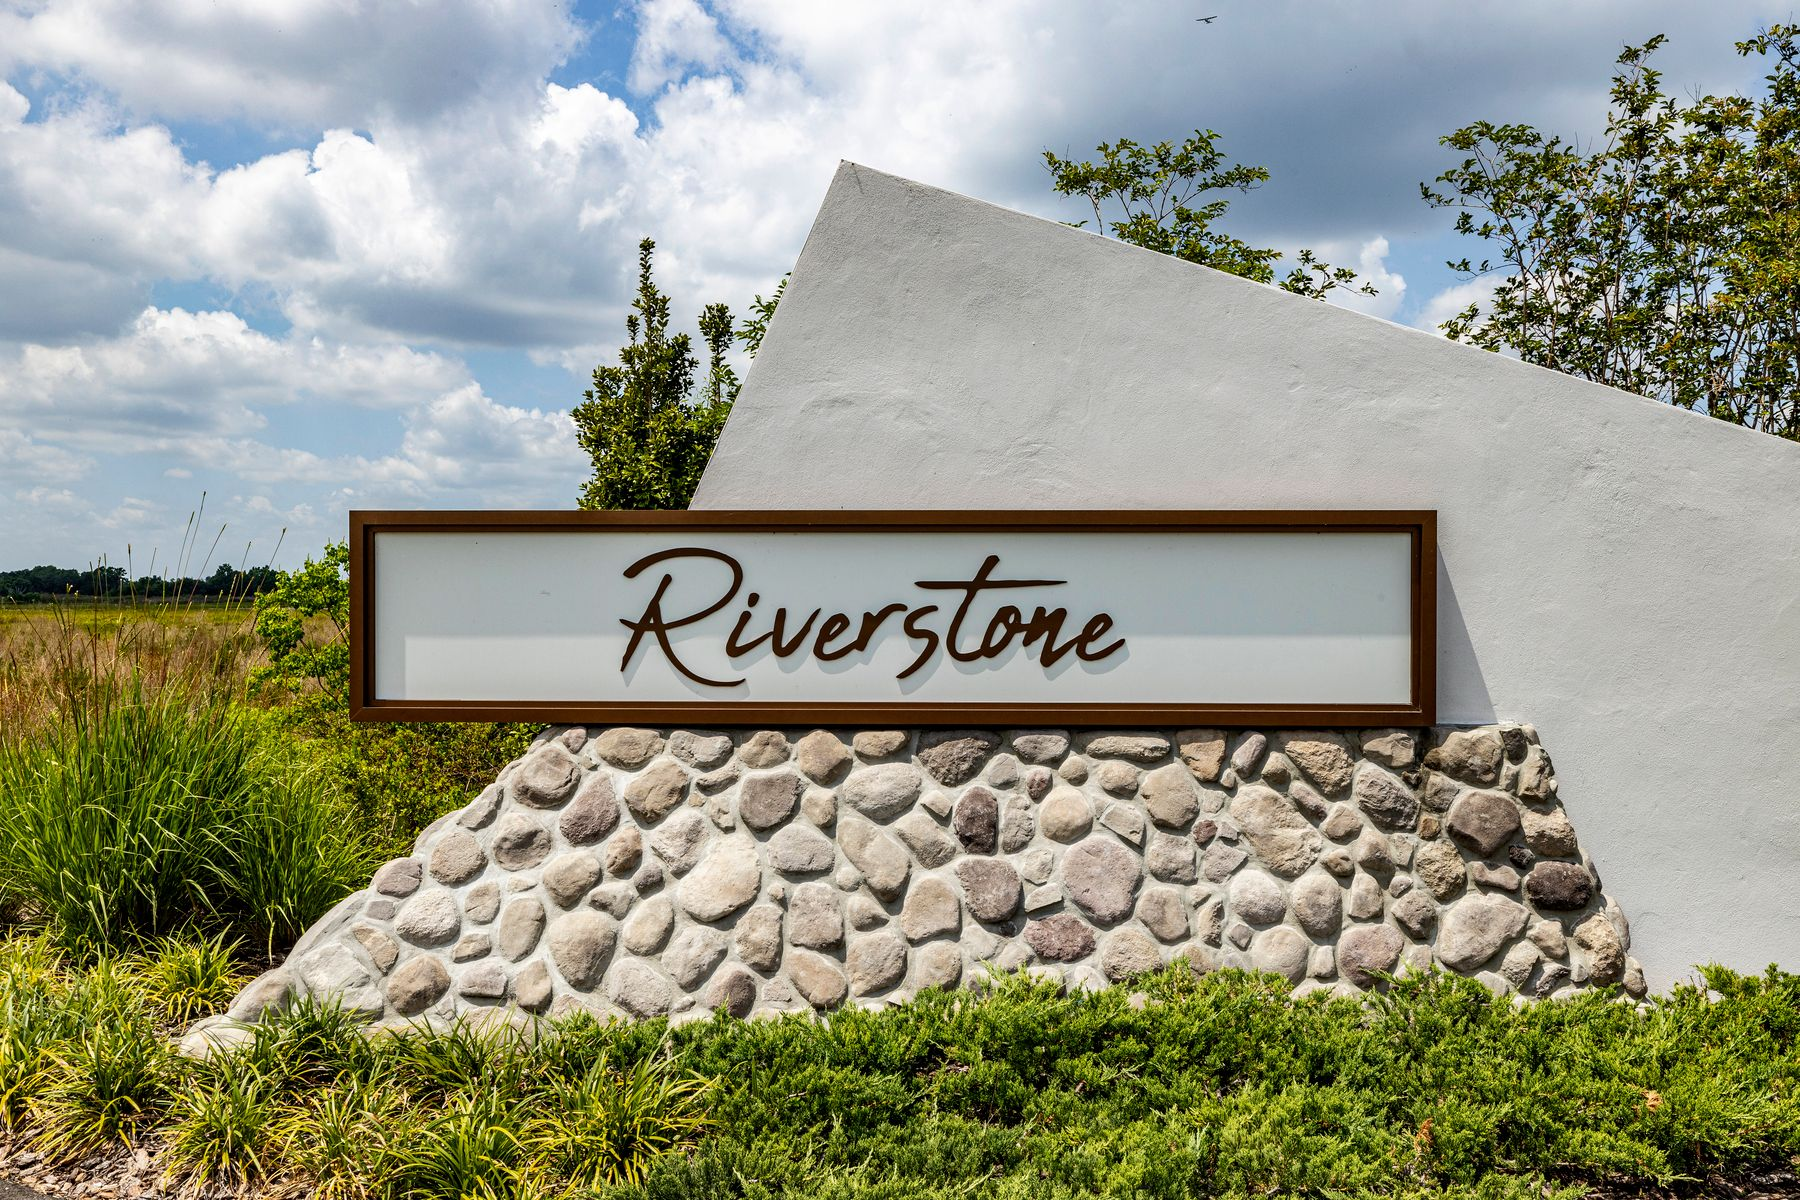 LGI Homes at Riverstone:Riverstone welcomes new homeowners to schedule a tour of the move-in ready homes!